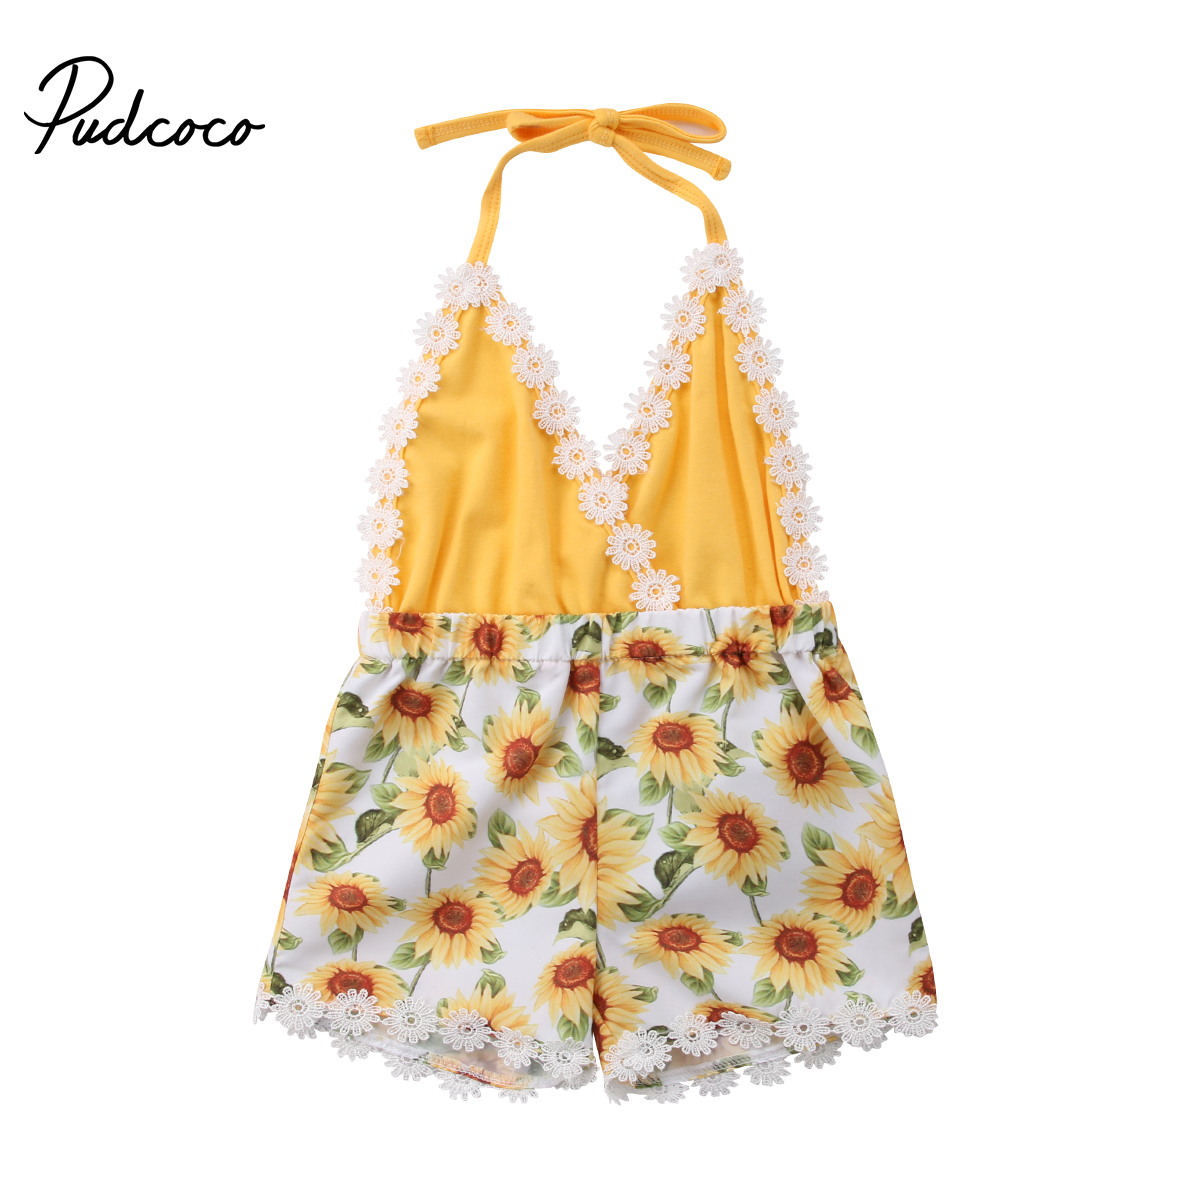 3M-5Y Pudcoco Baby Girls Lace Sunflower Romper Toddler Kids Sleeveless Floral Sunsuit Outfits Set